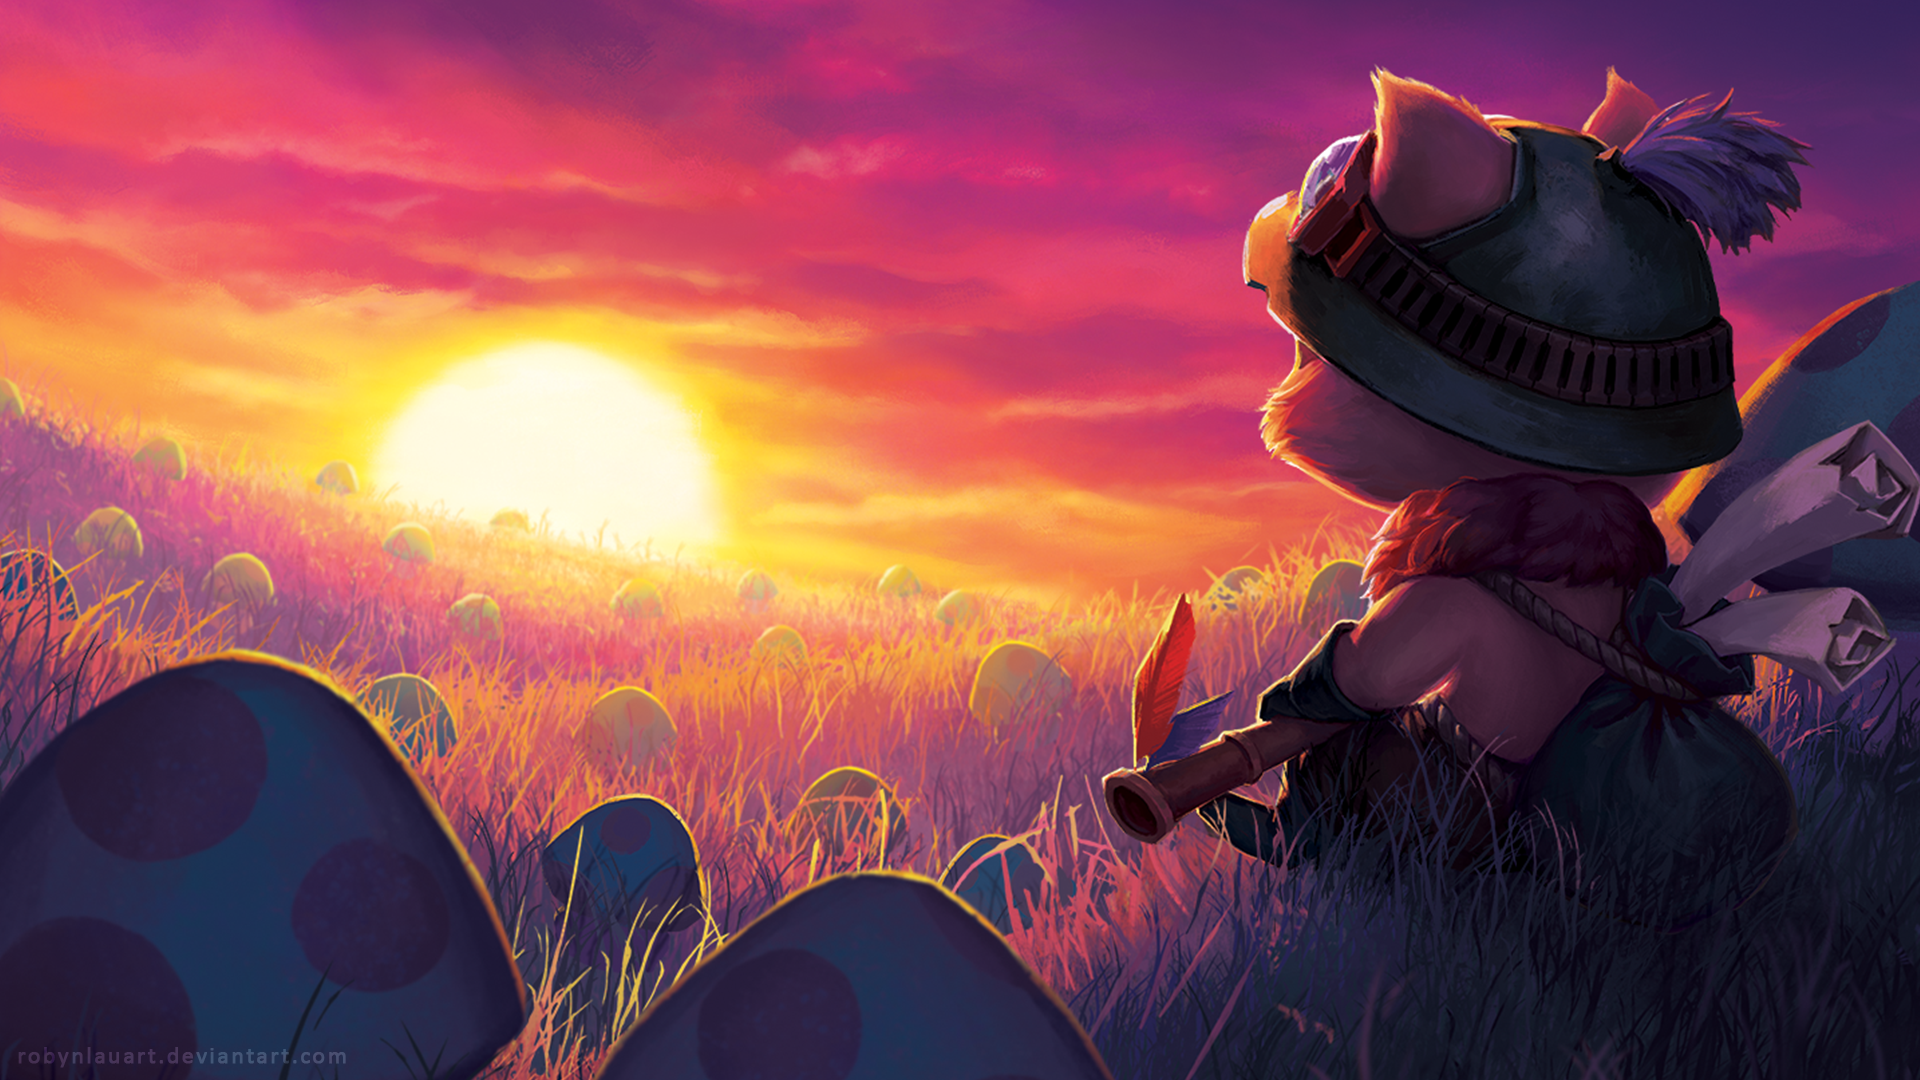 Videojuego - League Of Legends  Champiñón Campo Atardecer Teemo (League Of Legends) Fondo de Pantalla